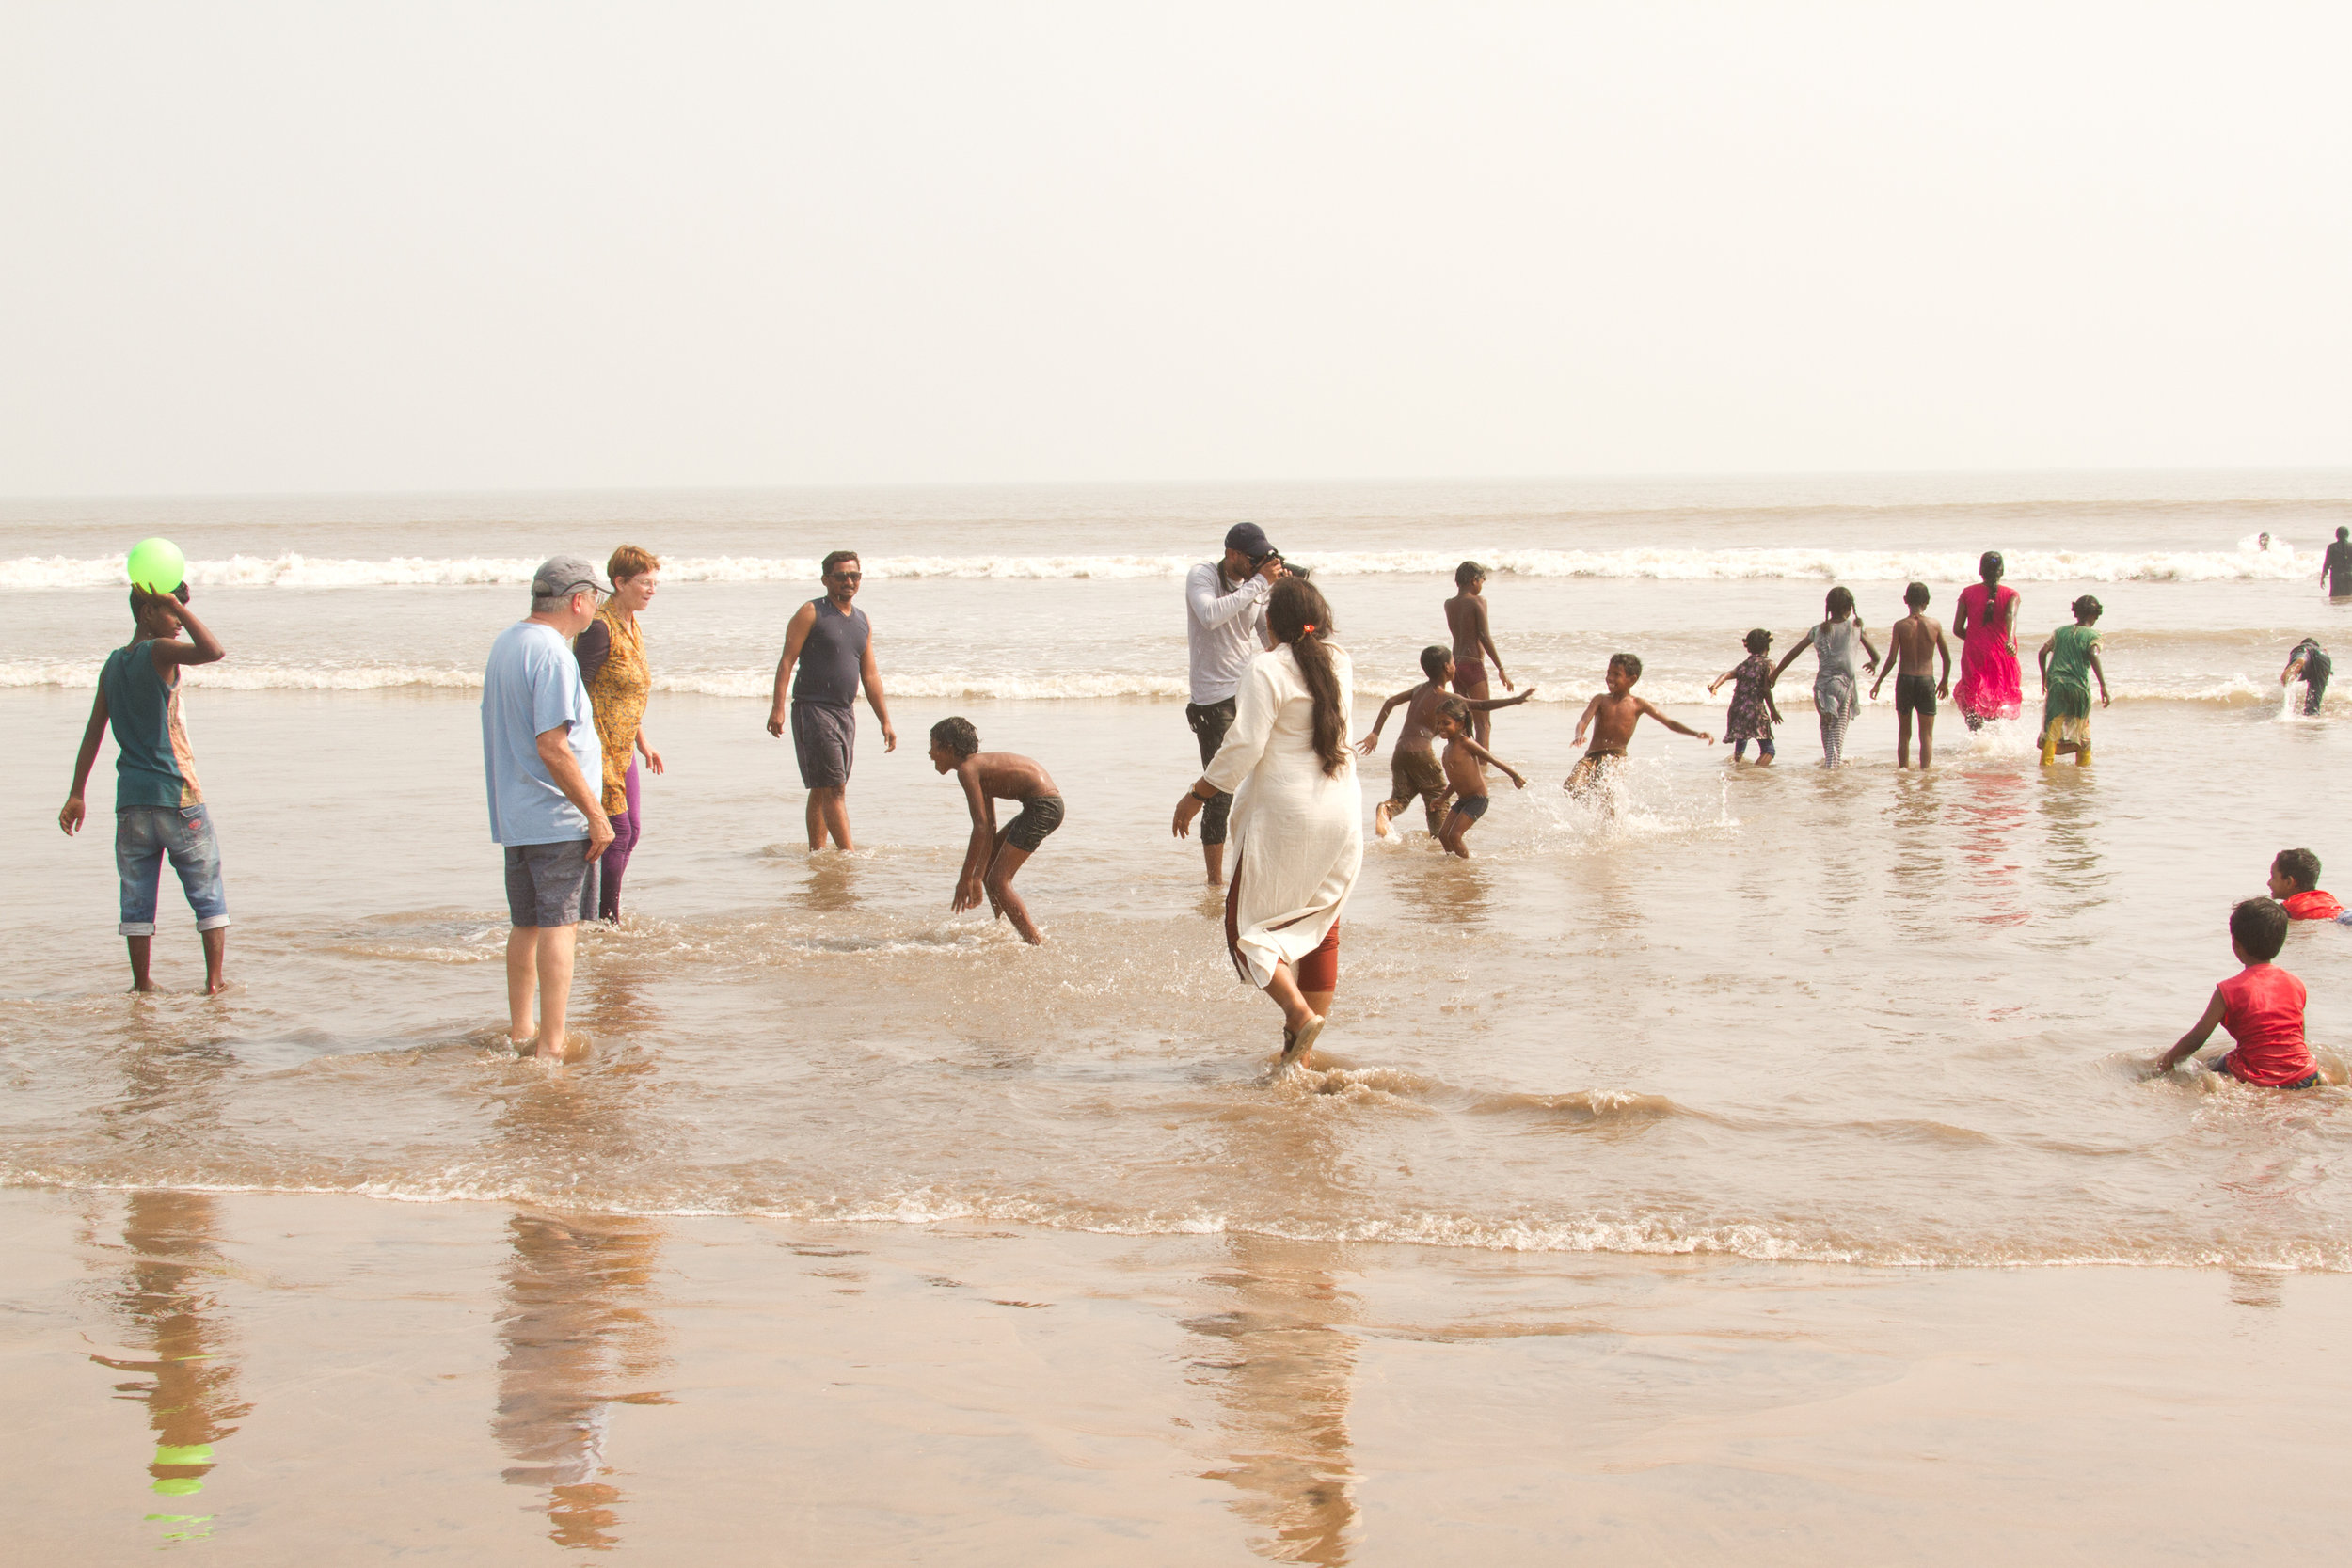 Some of the 60 orphans that people in the church sponsor.  They were so excited to go to the beach. Most had never seen the ocean, even though its a 90 minute drive.